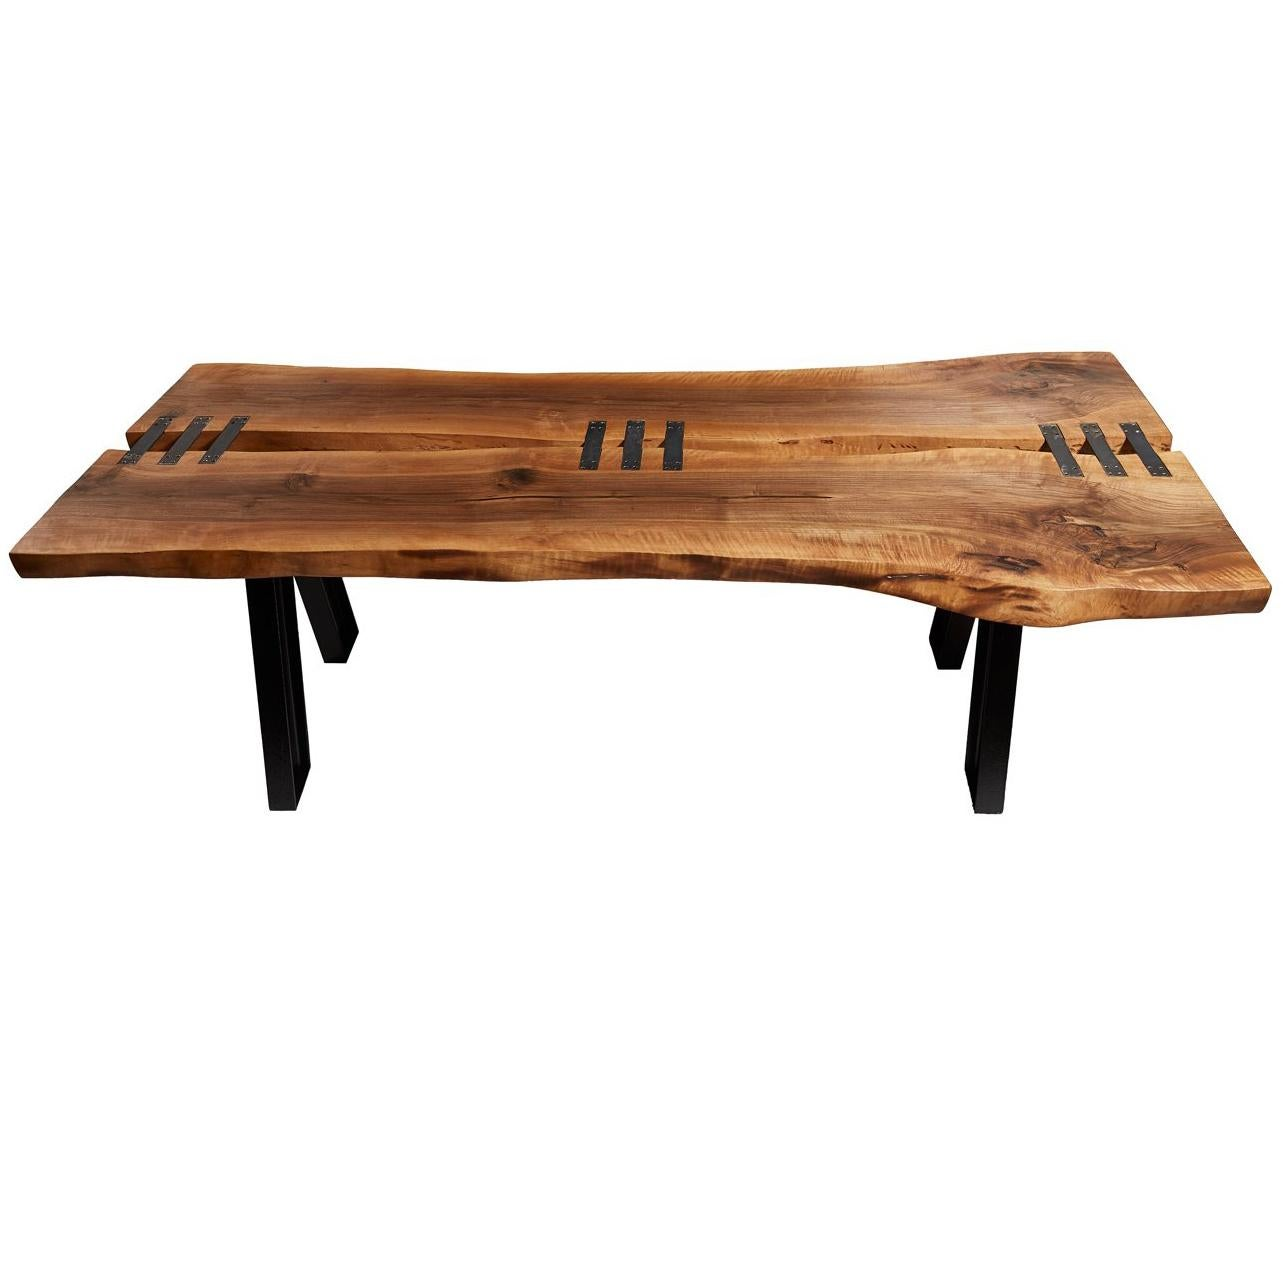 stitch walnut live edge dining table for sale at 1stdibs rh 1stdibs com live edge river dining table for sale live edge river dining table for sale